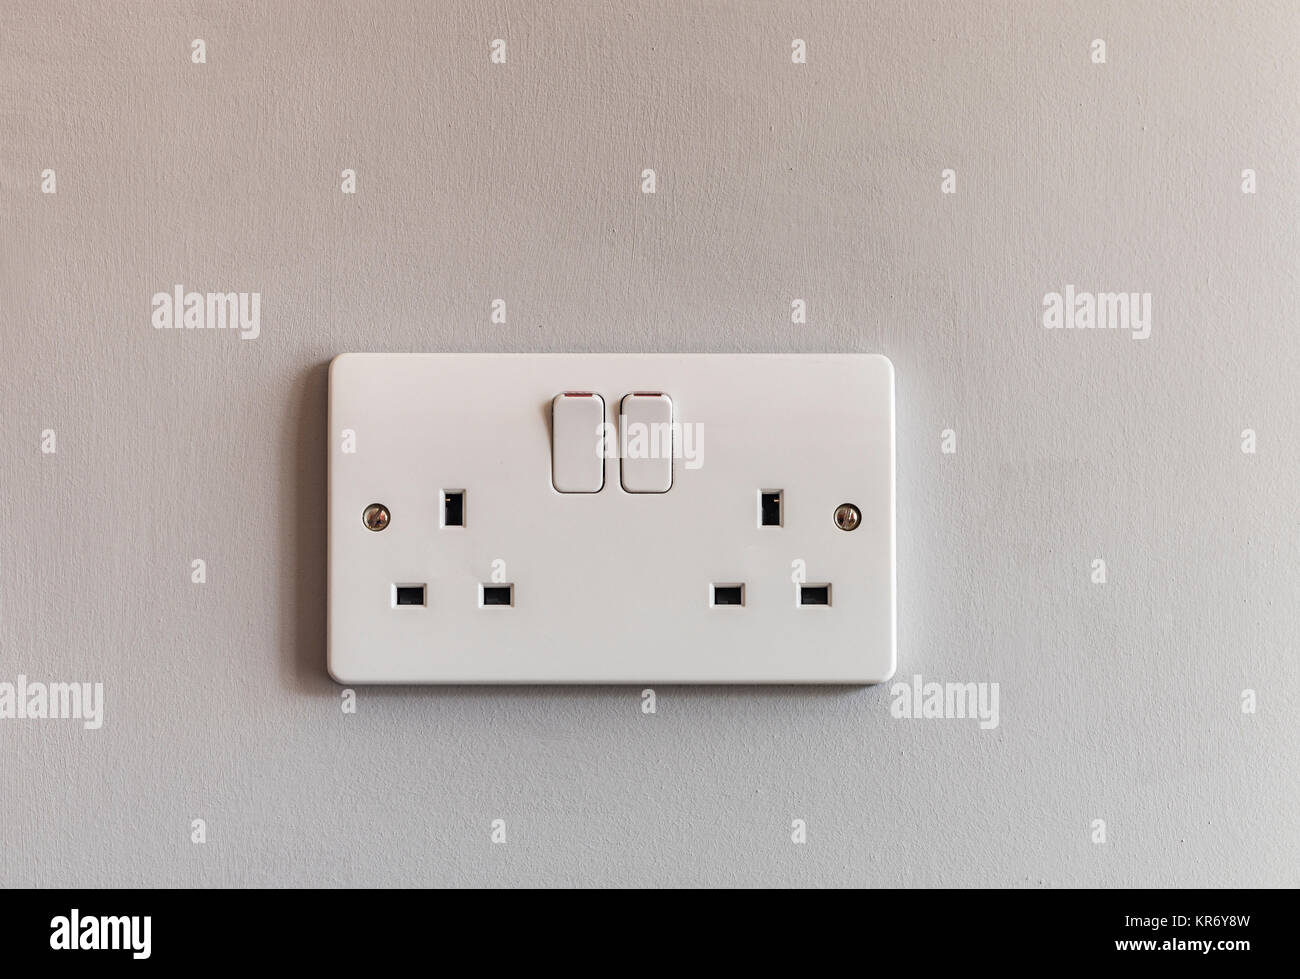 Double Socket Stock Photos Images Alamy Electrical Diagram Uk Domestic 3 Pin Plug In White Plastic On A Beige Coloured Wall